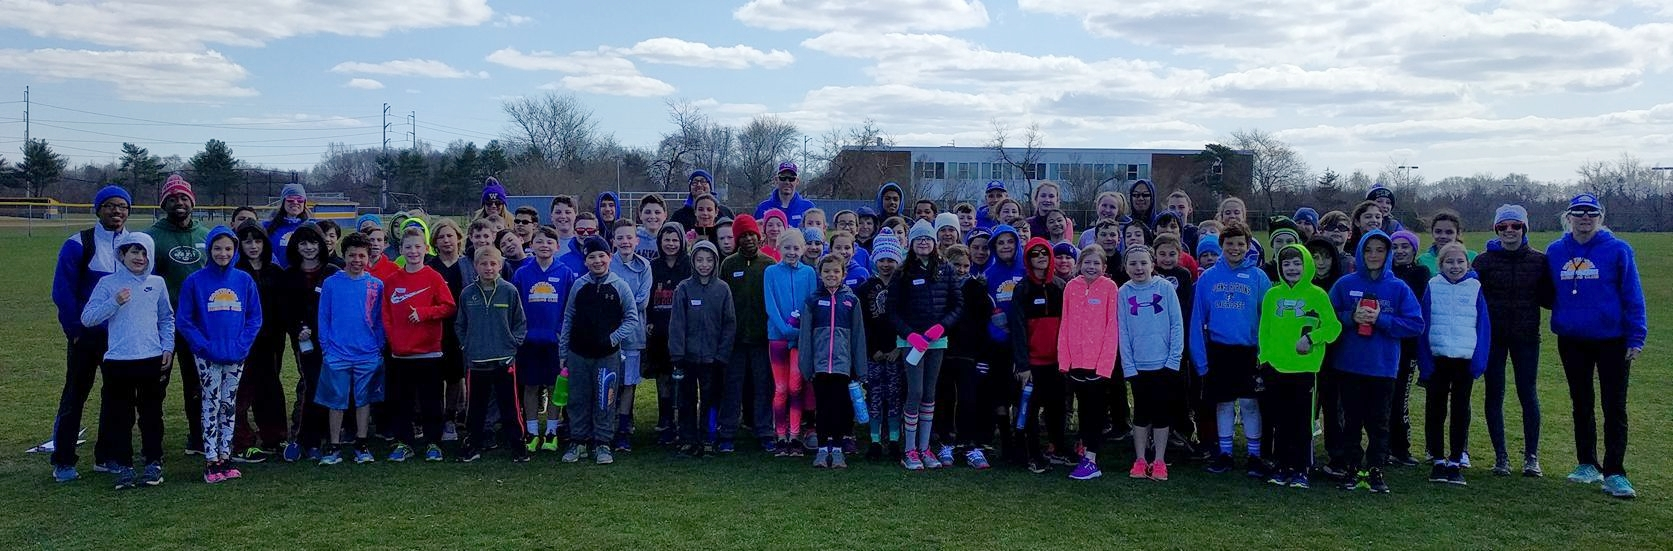 Northport Running Club Youth Track and Field Program, coached by Vicki Fox, Pat Viola and assistant coaches from Adelphi University.